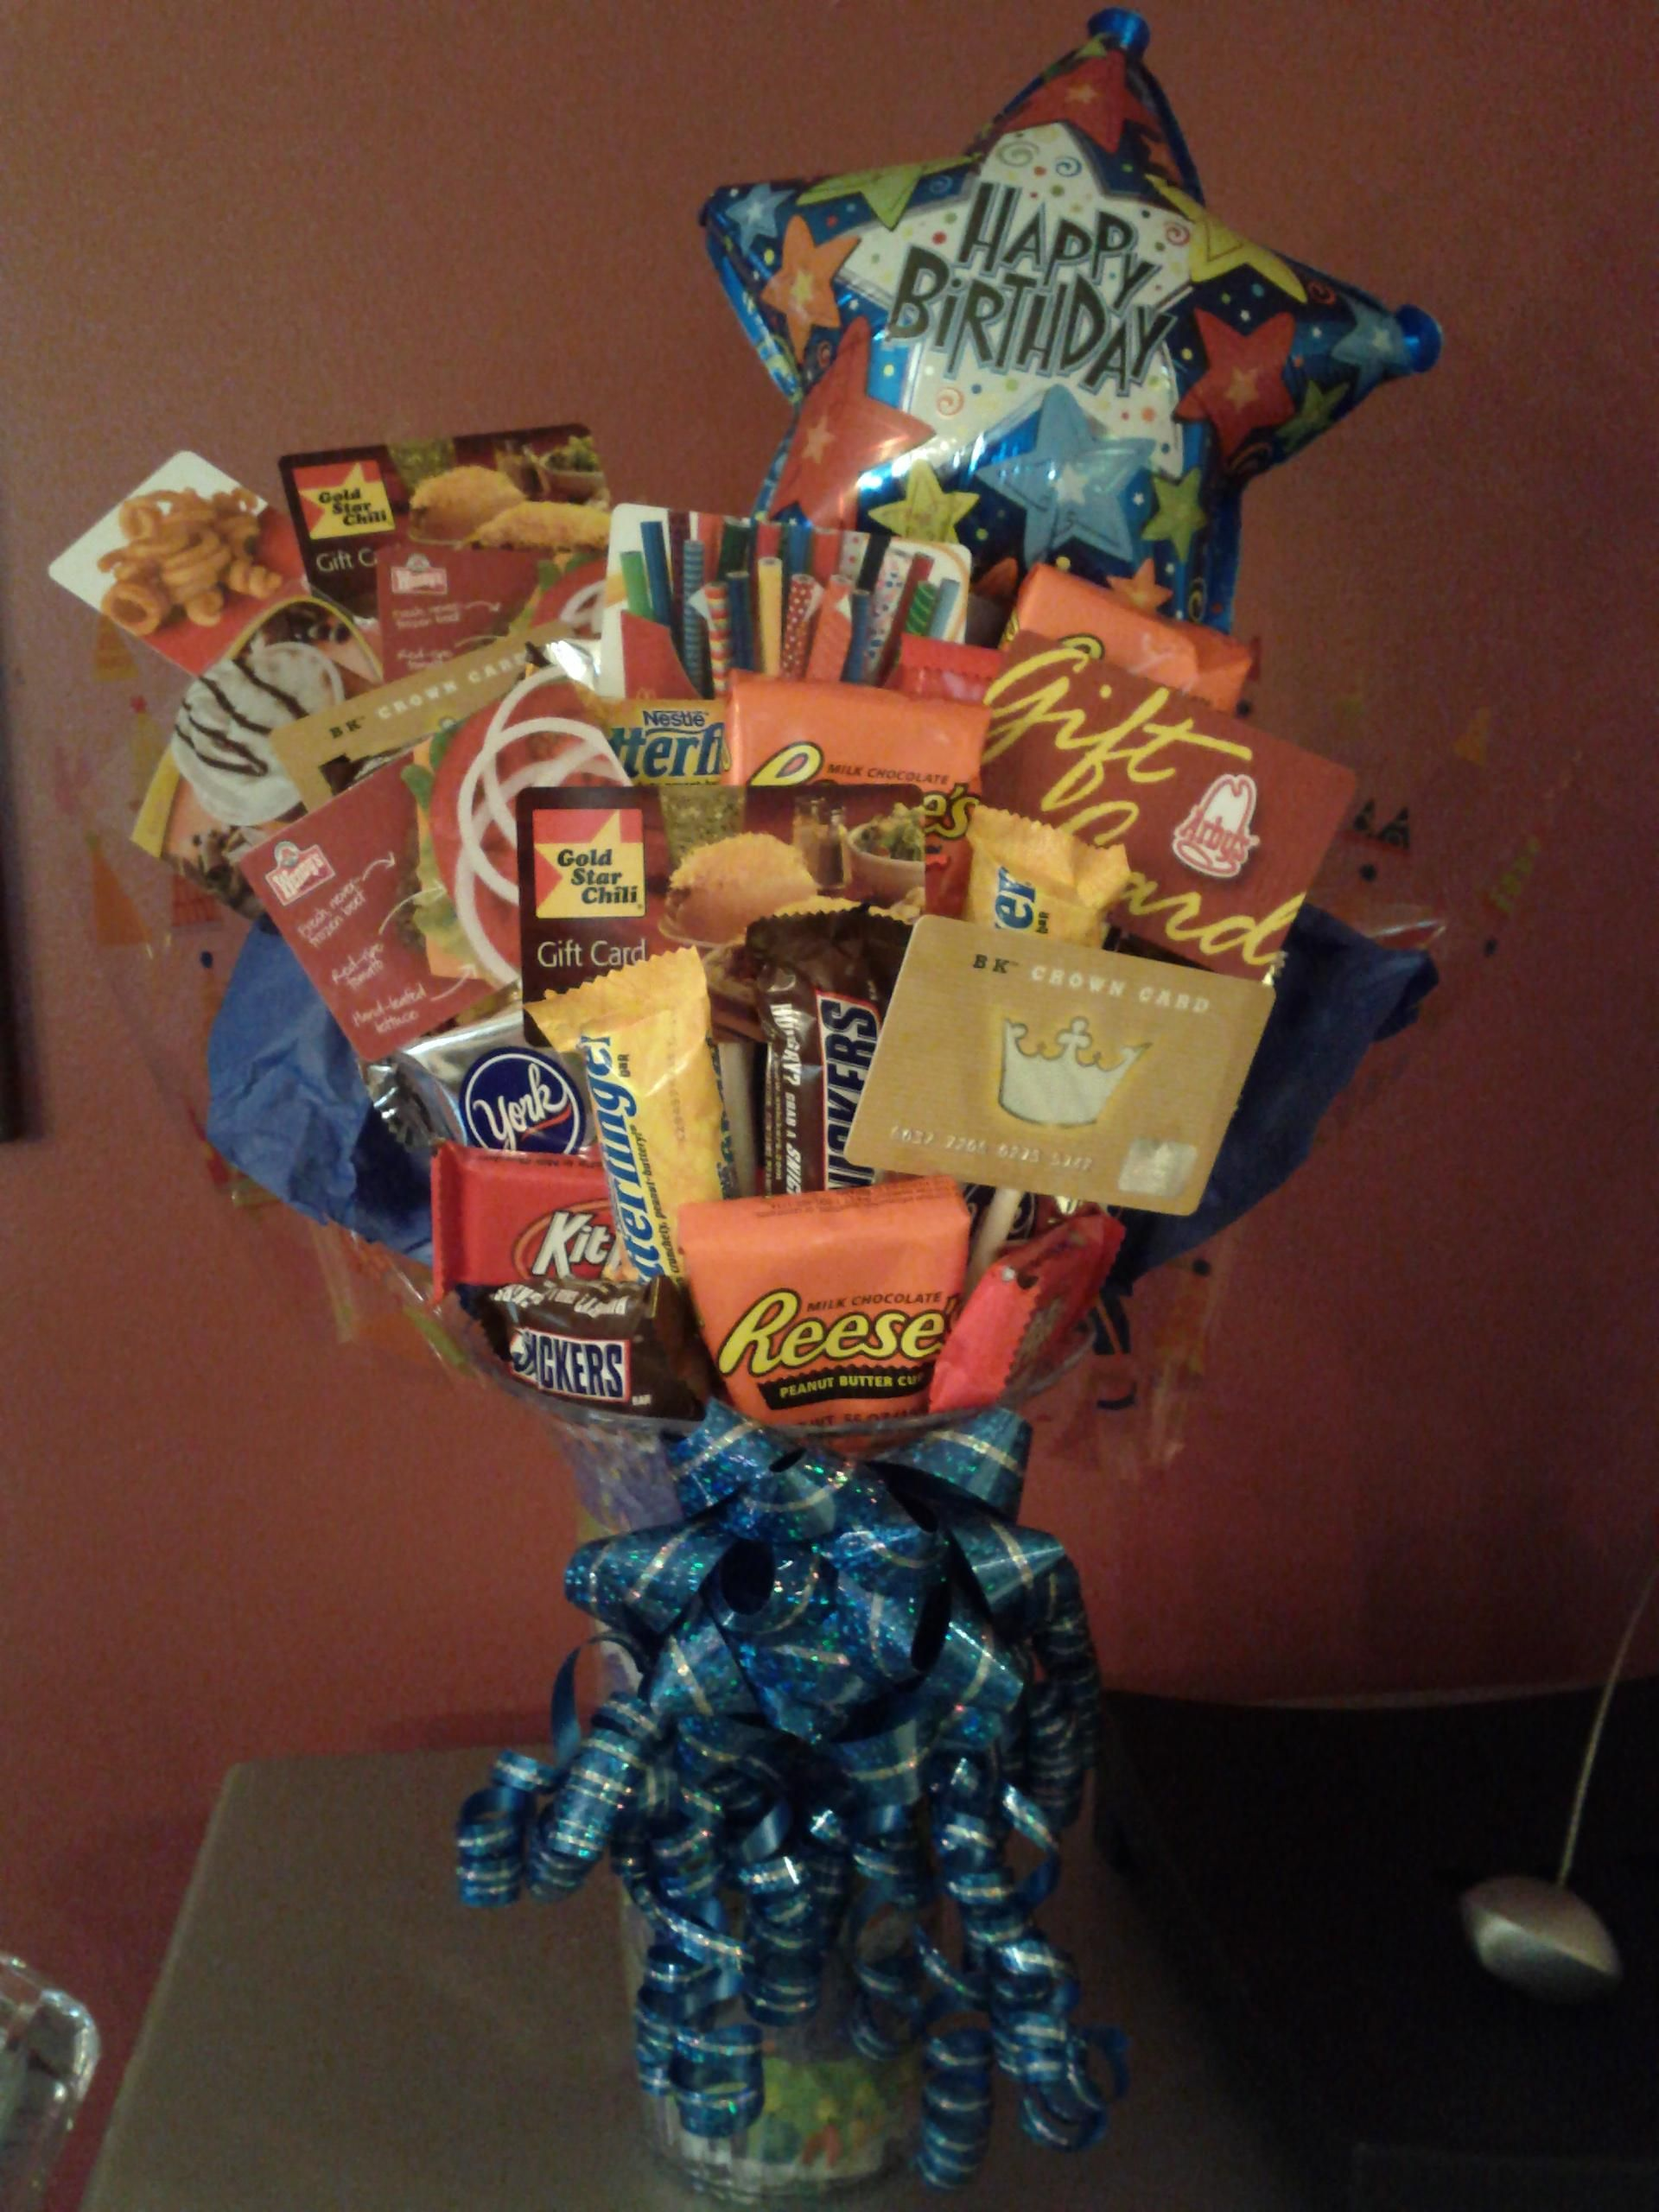 Awesome candy/gift card bouquet my sister and I made for